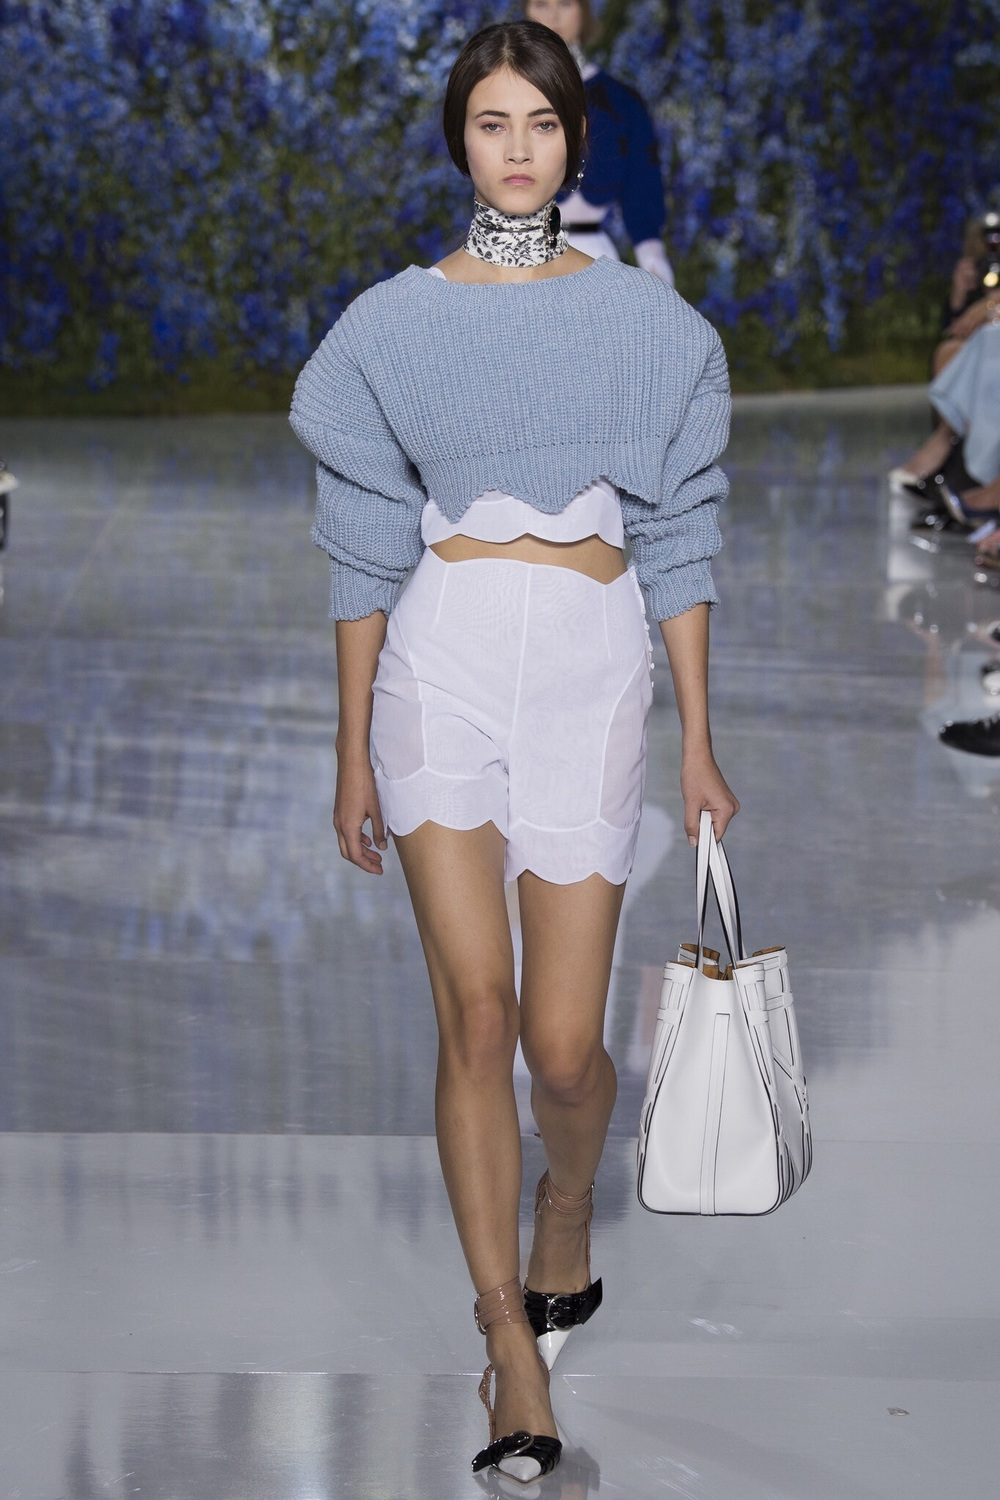 Christian Dior, Look #49 http://www.vogue.com/fashion-shows/spring-2016-ready-to-wear/christian-dior/slideshow/collection#49?mbid=ios_share